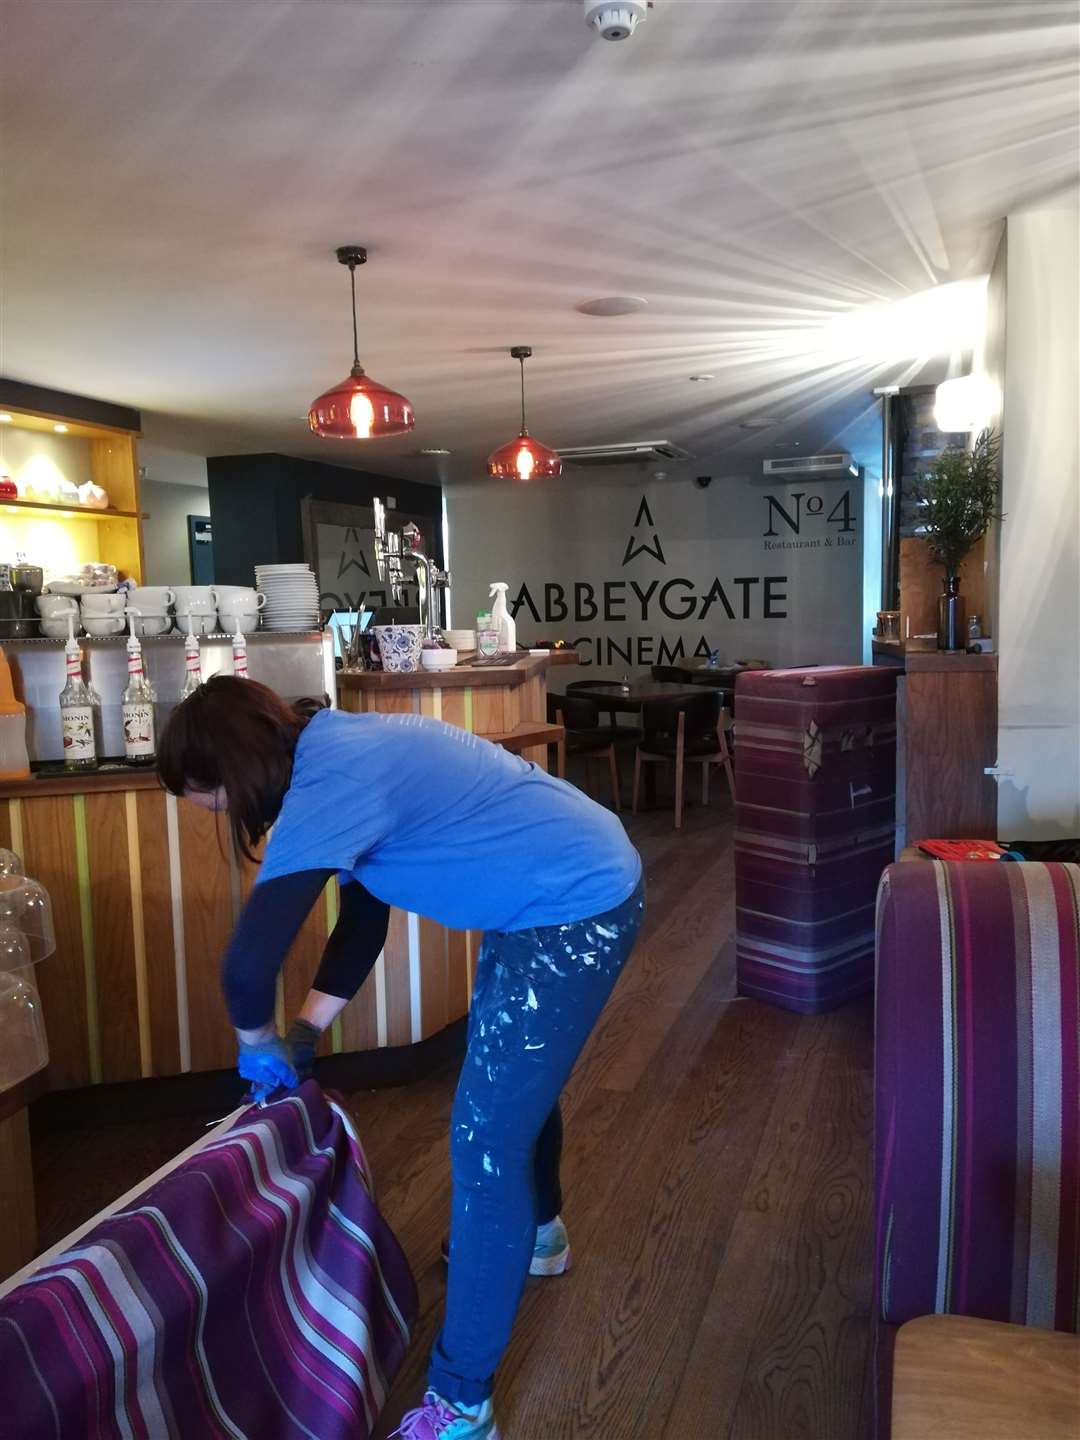 Work going on behind the scenes at Abbeygate during the lockdown (33817988)